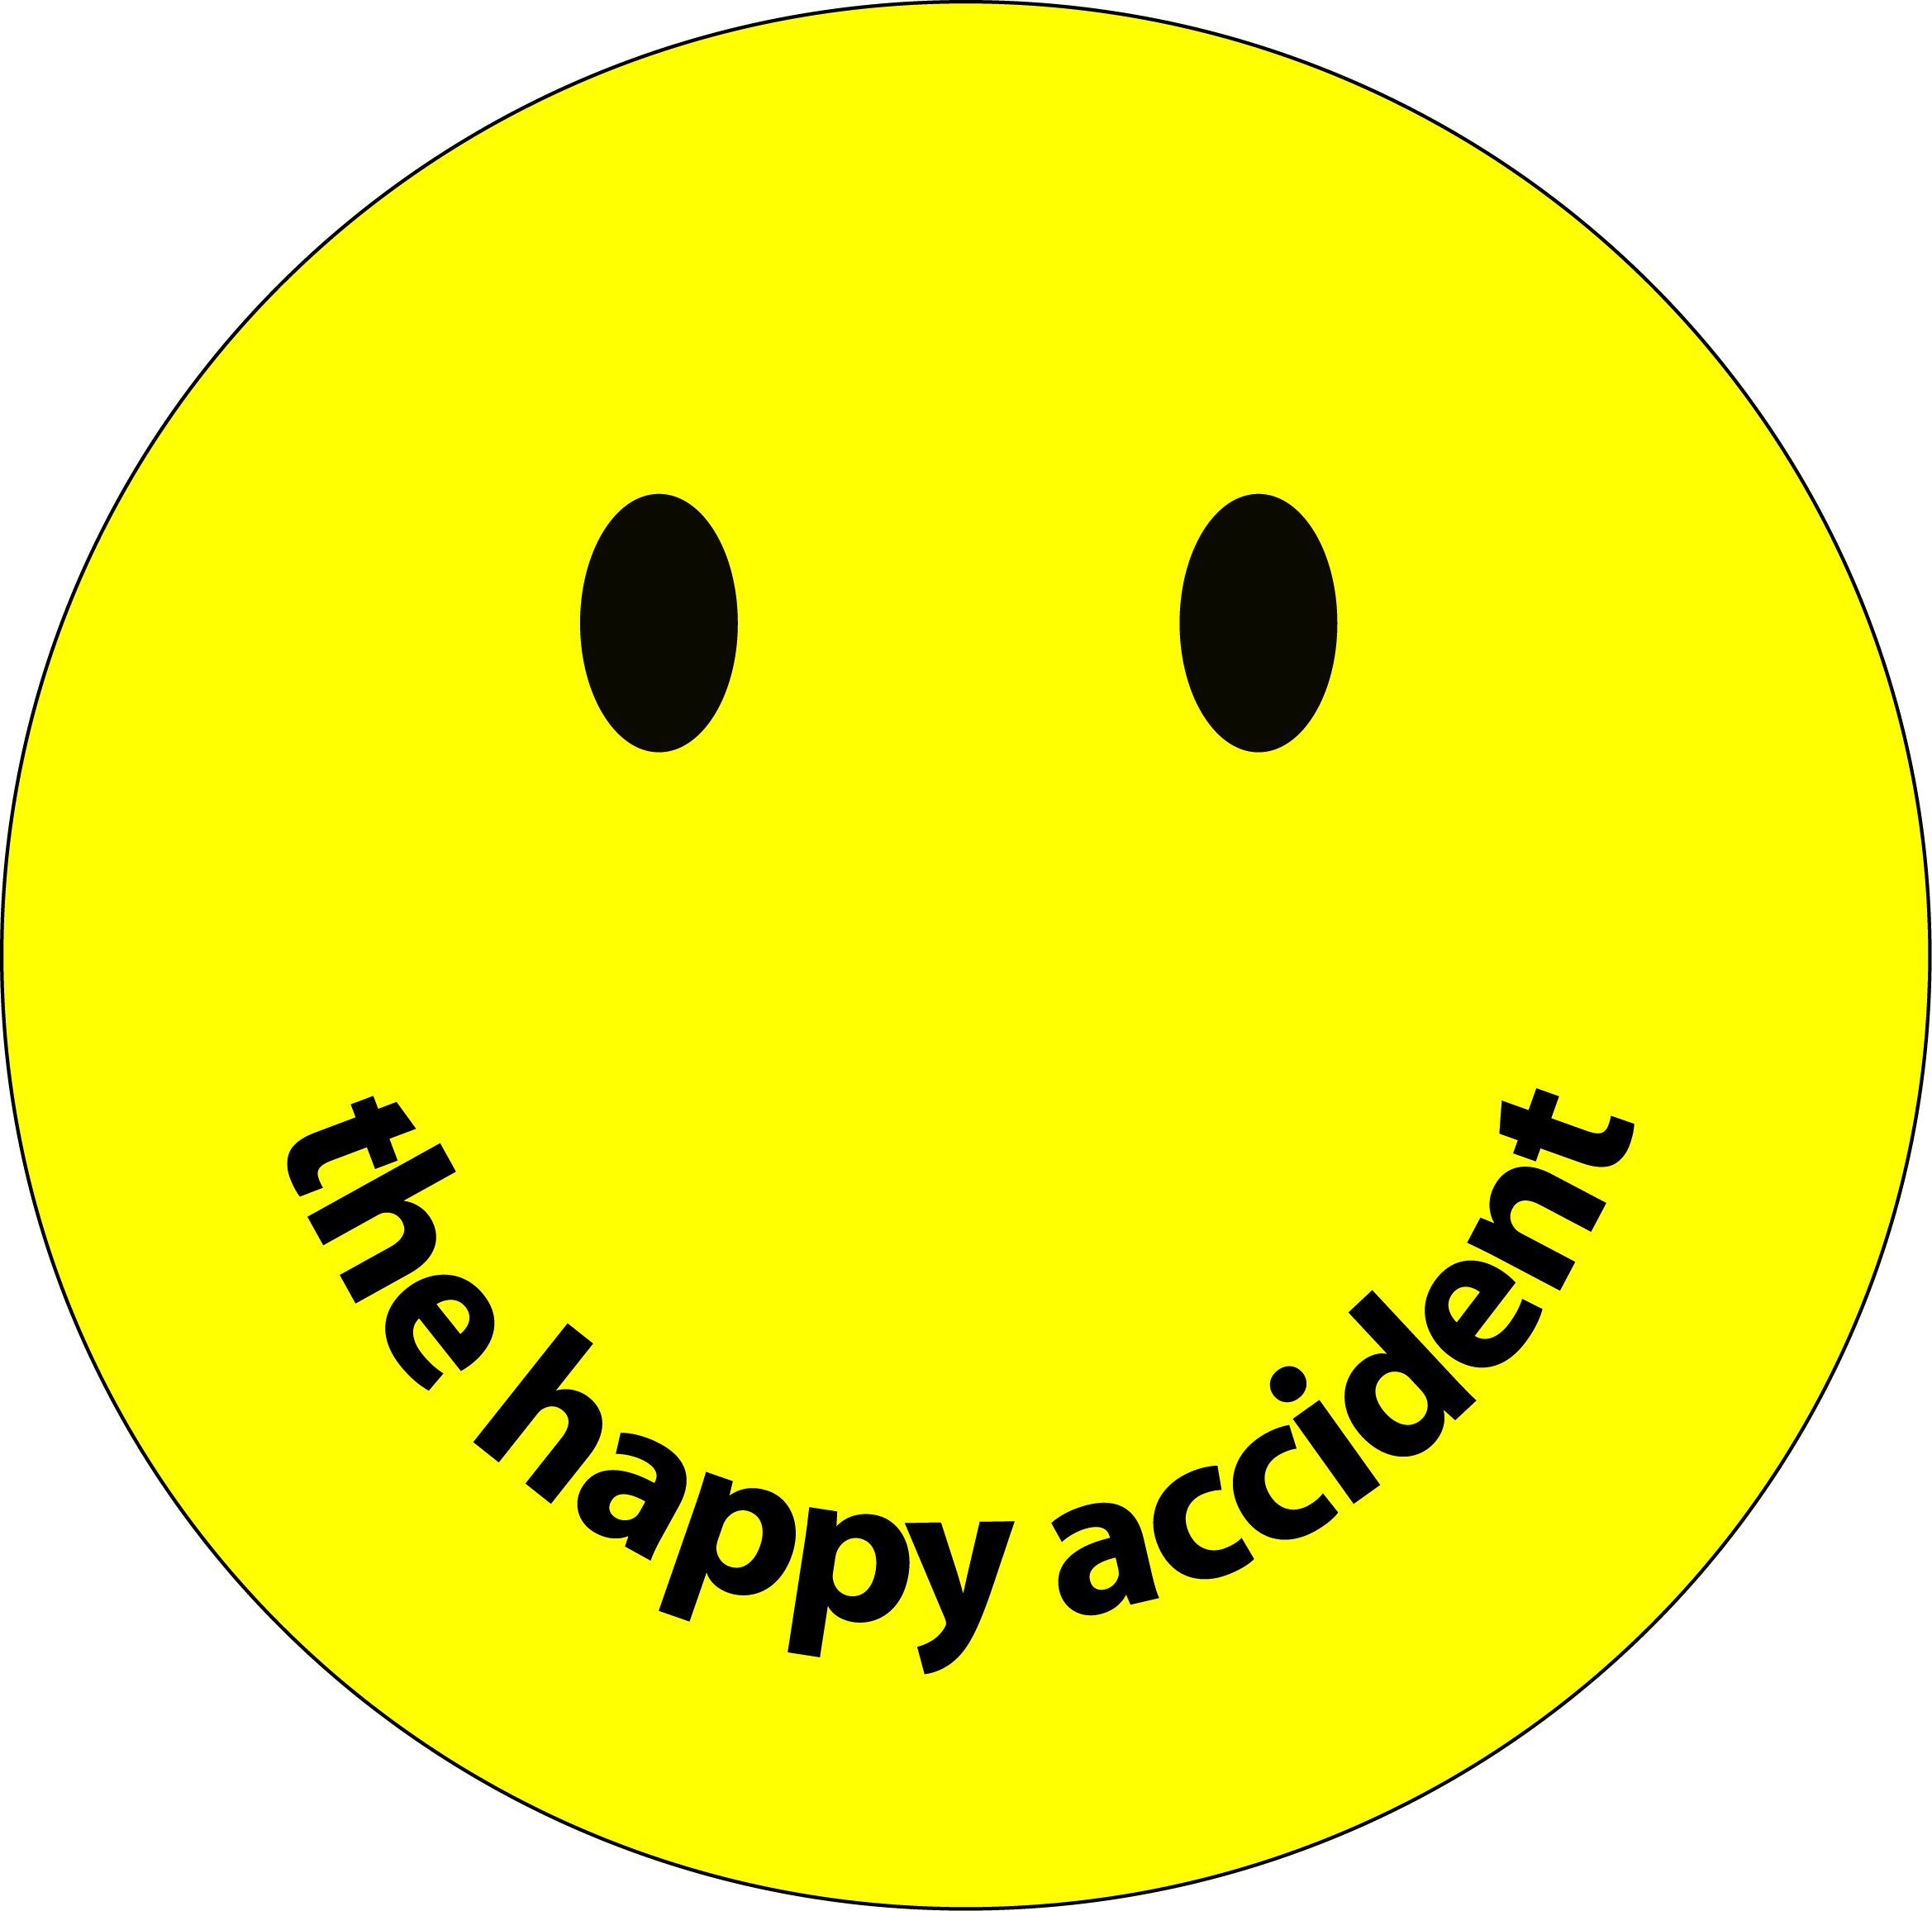 happy-accident-31.jpg